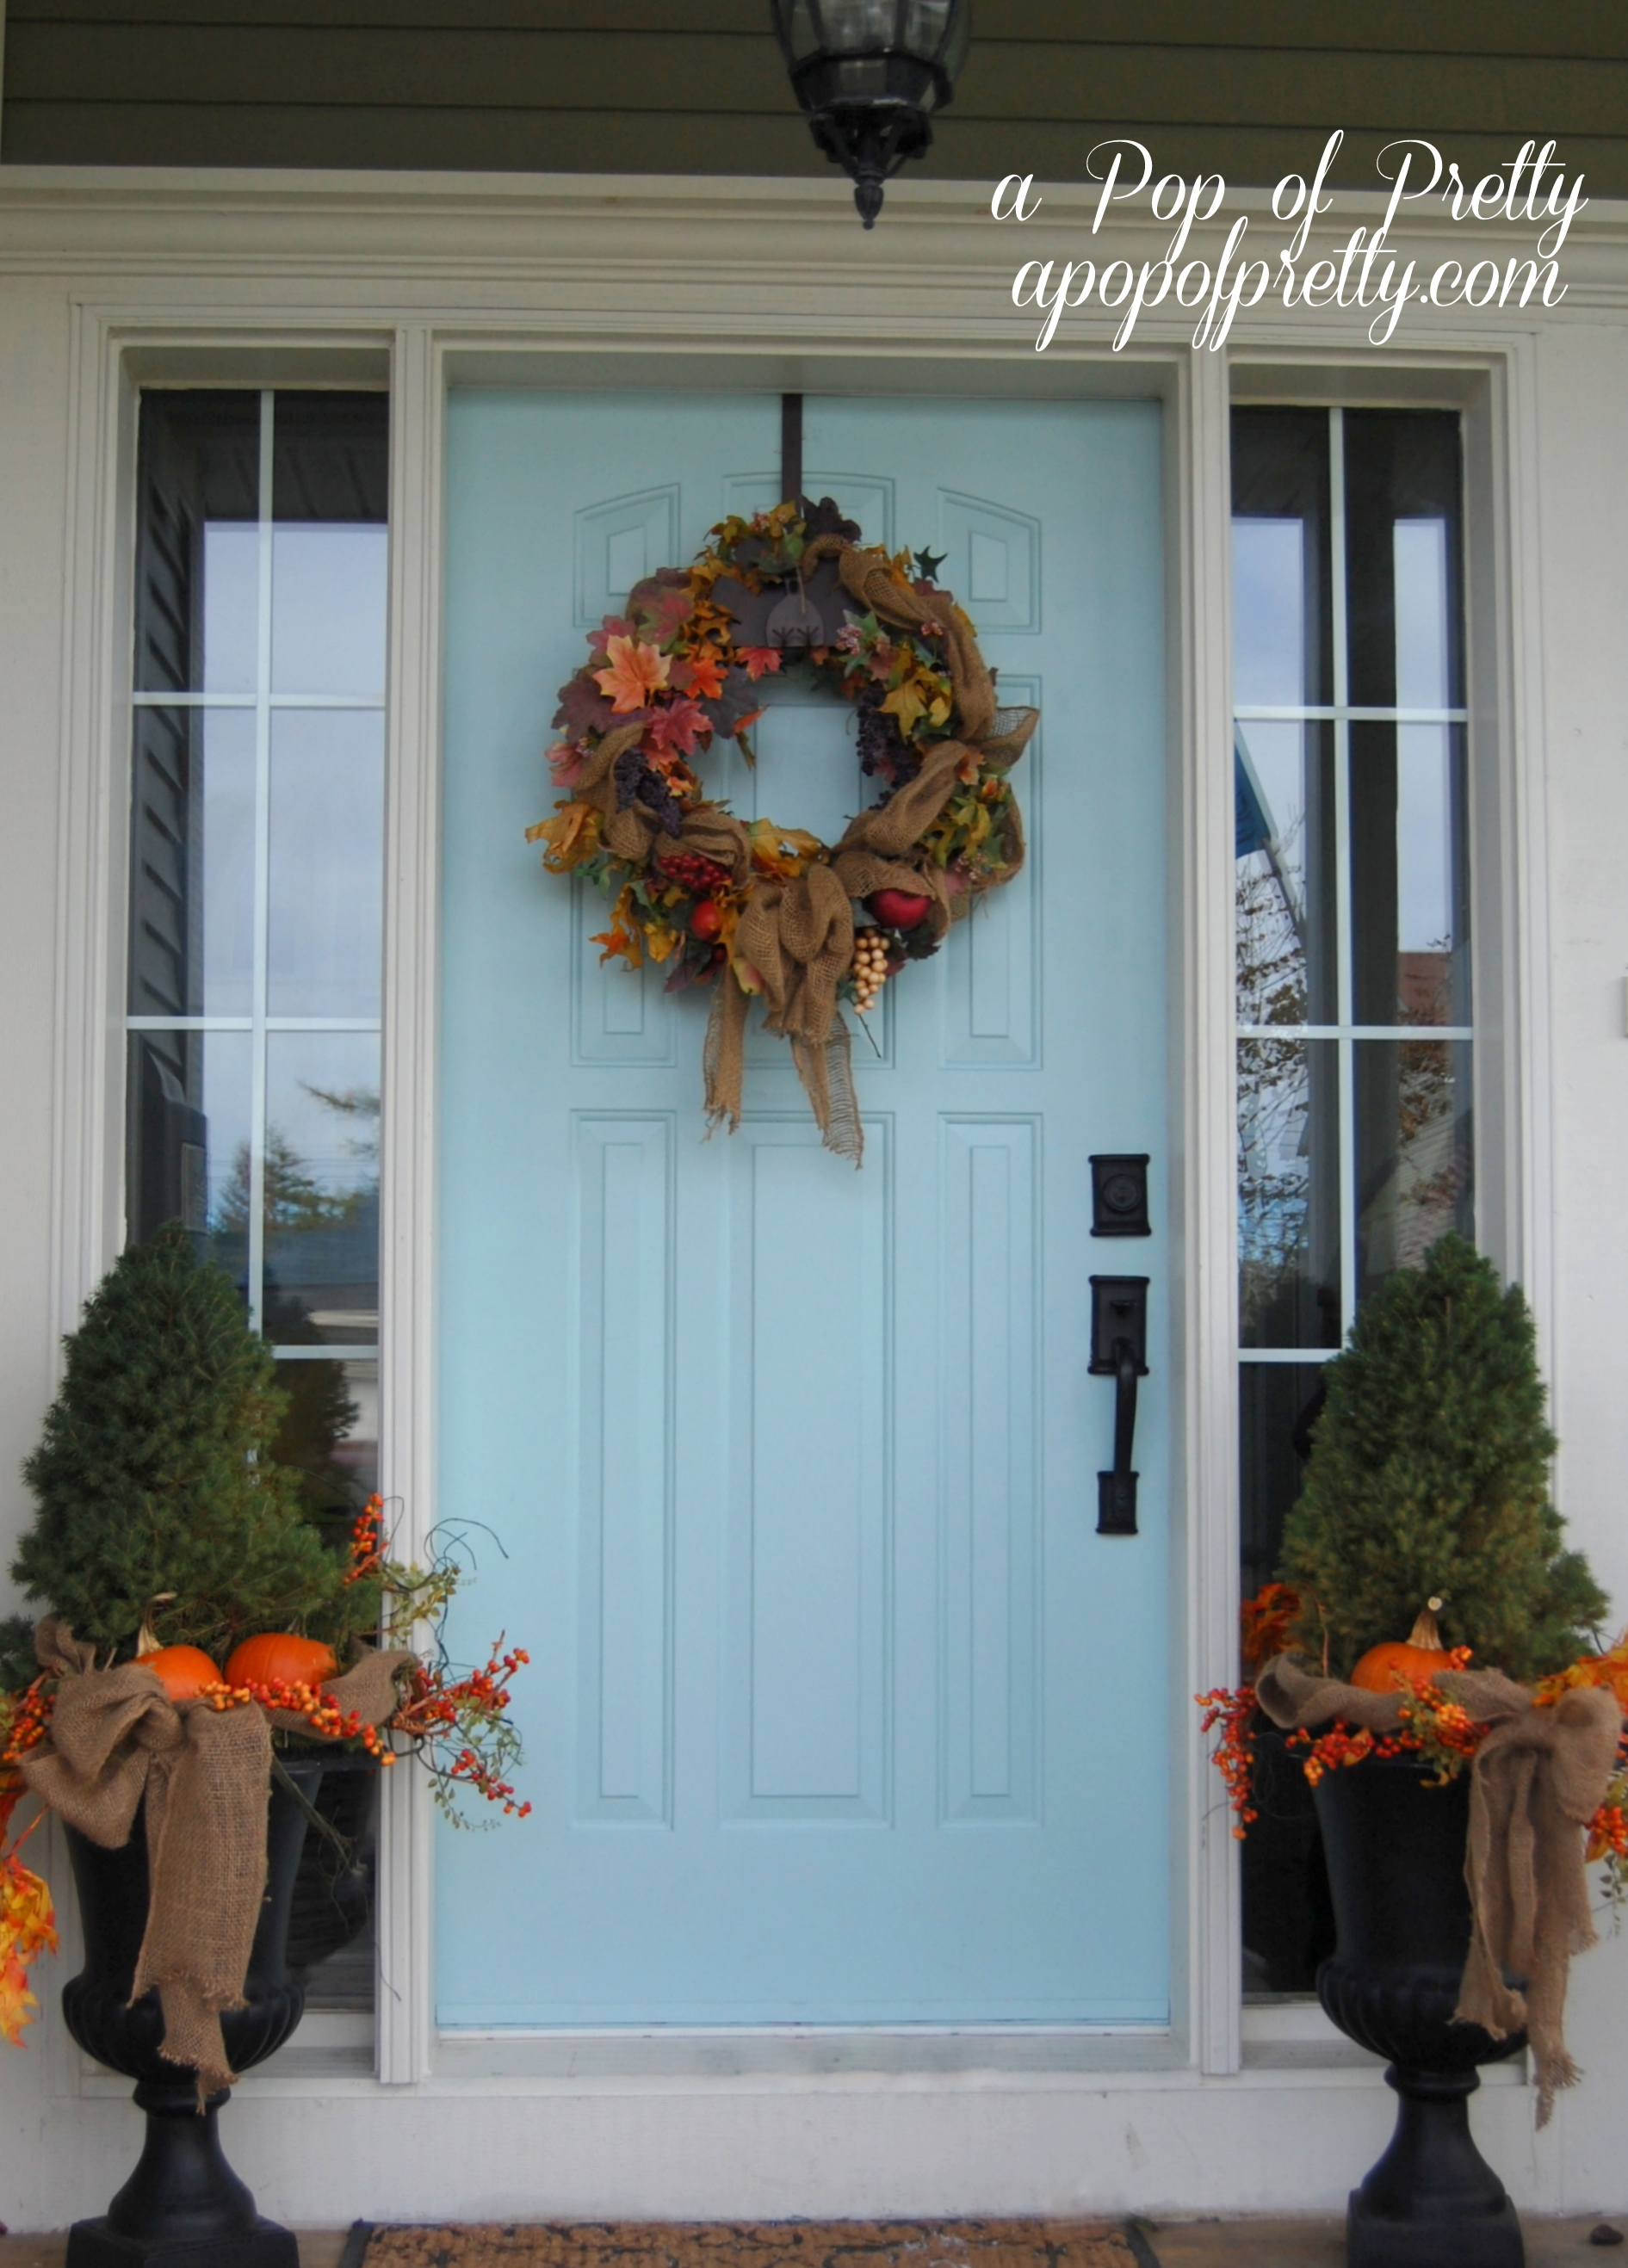 Fall decorating front porch ideas a pop of pretty blog Front veranda decorating ideas